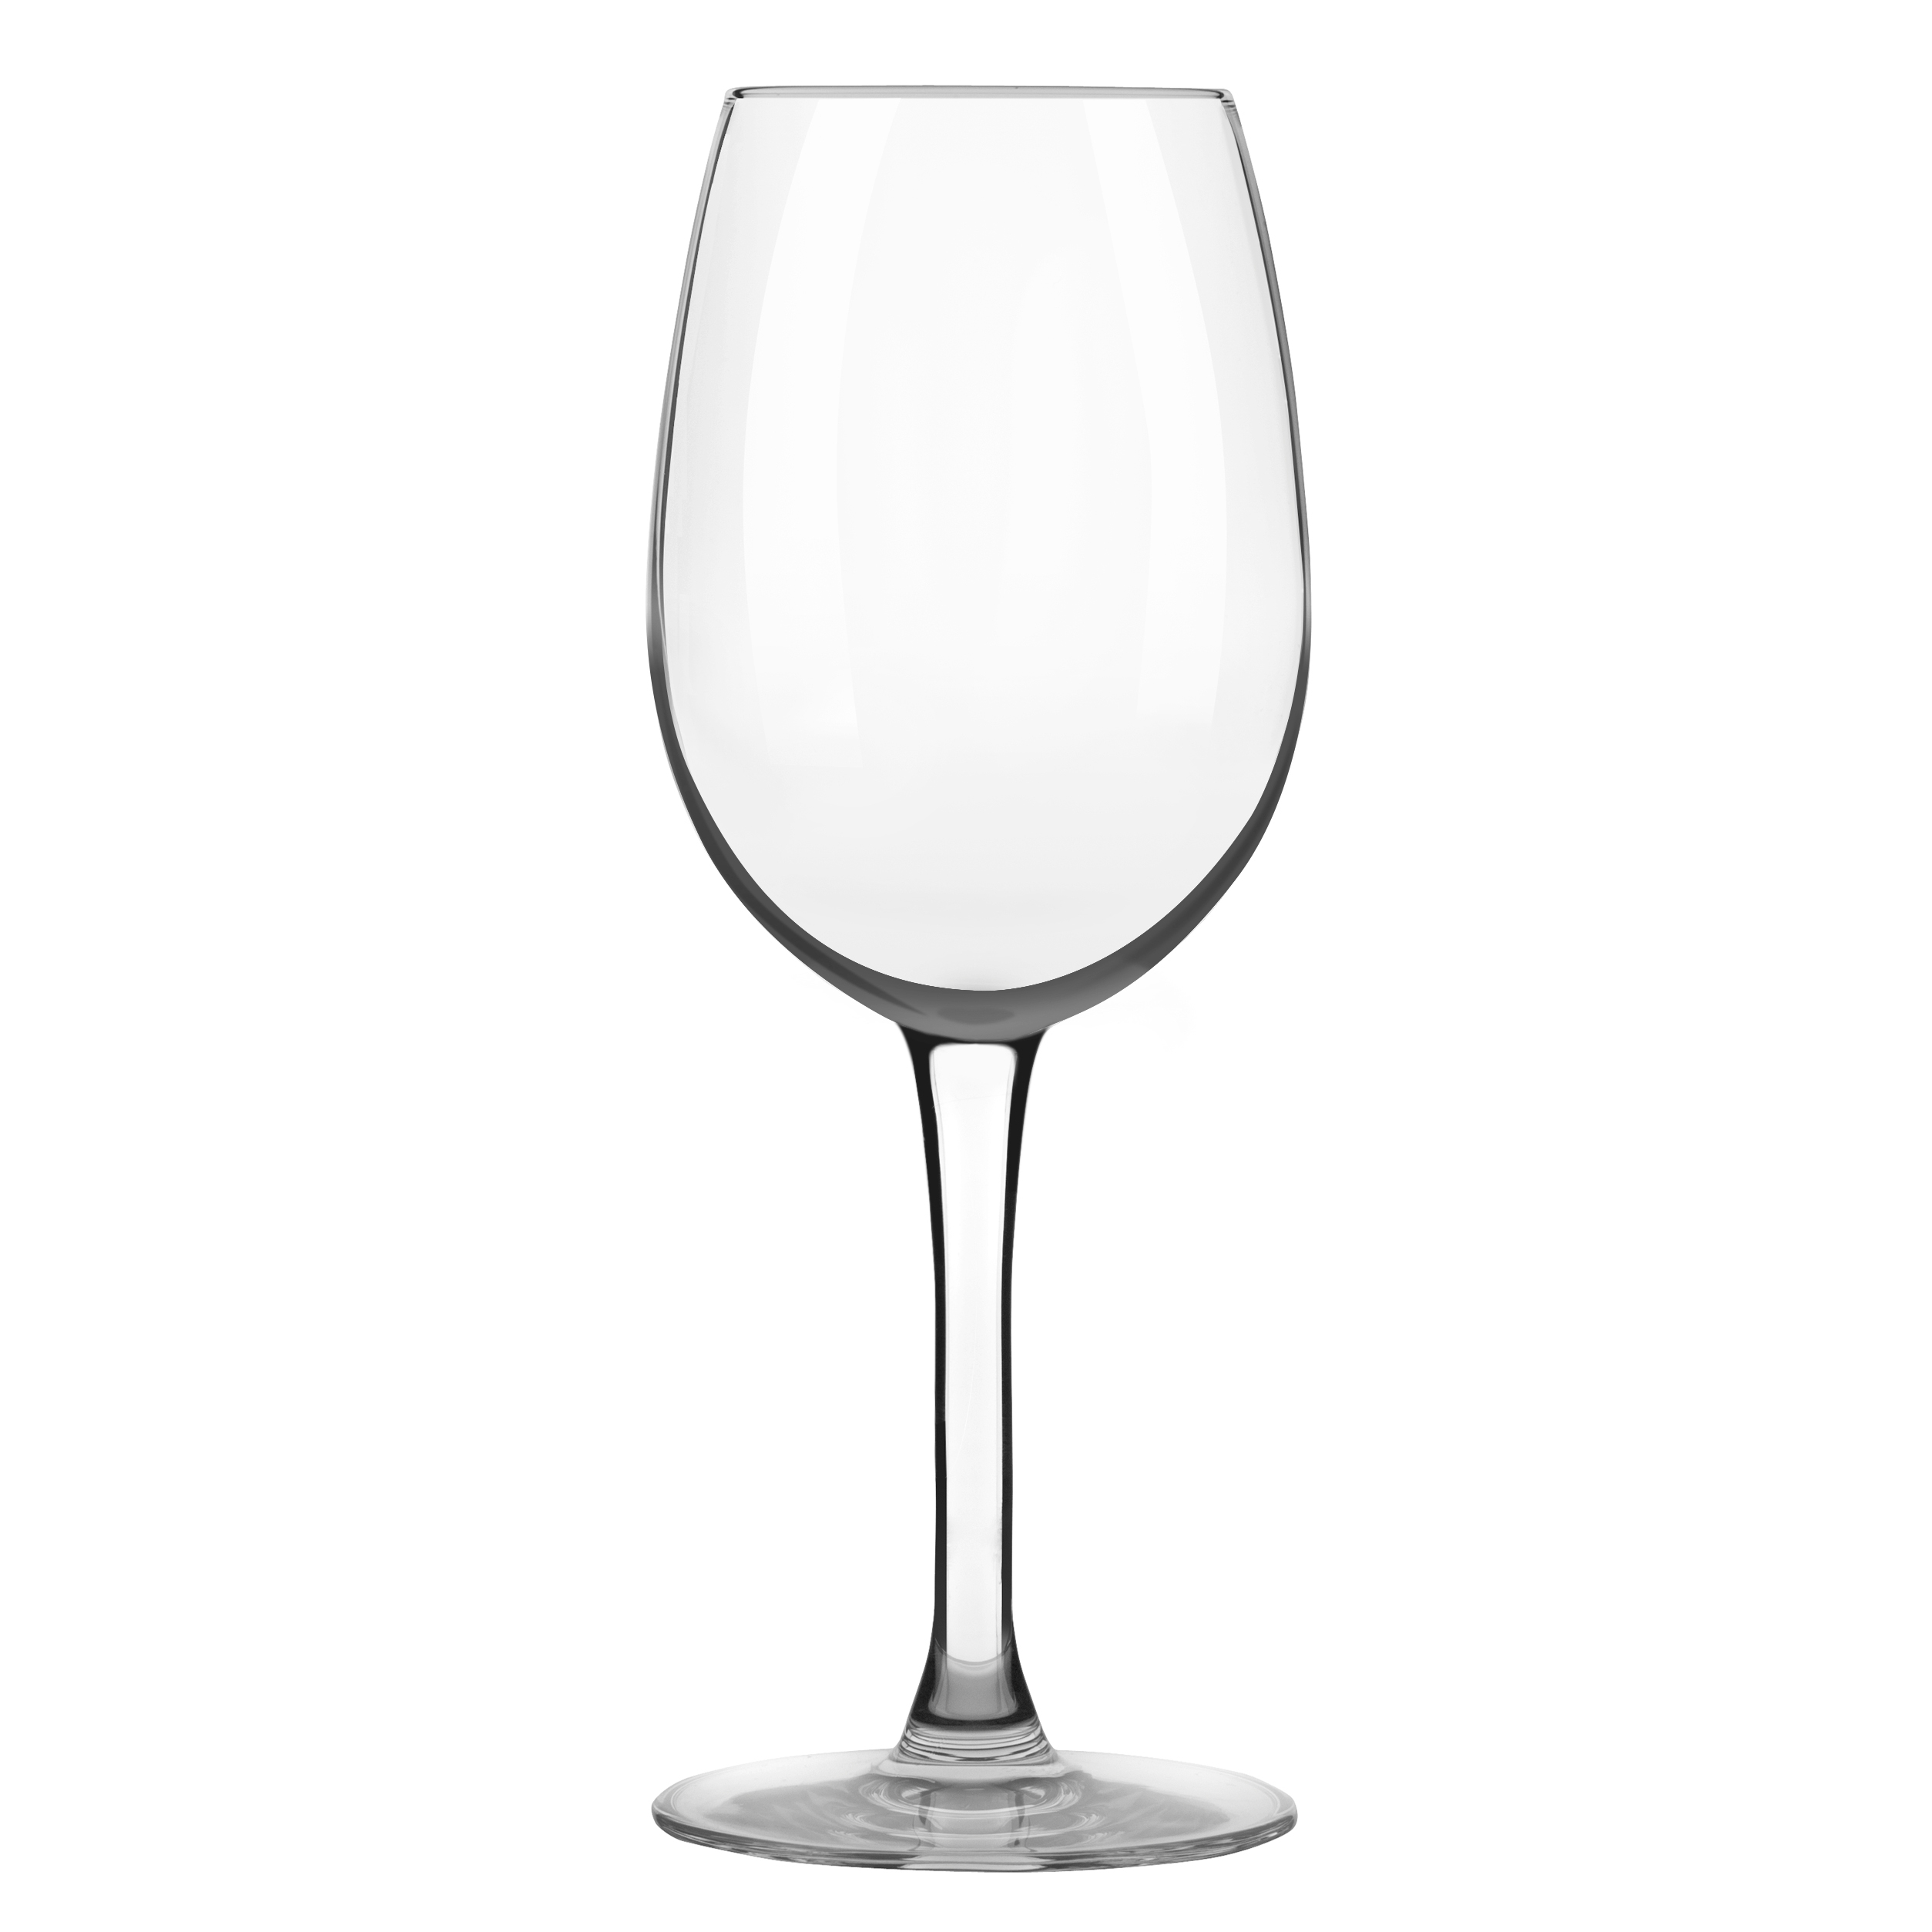 Libbey Glass 9150 glass, wine